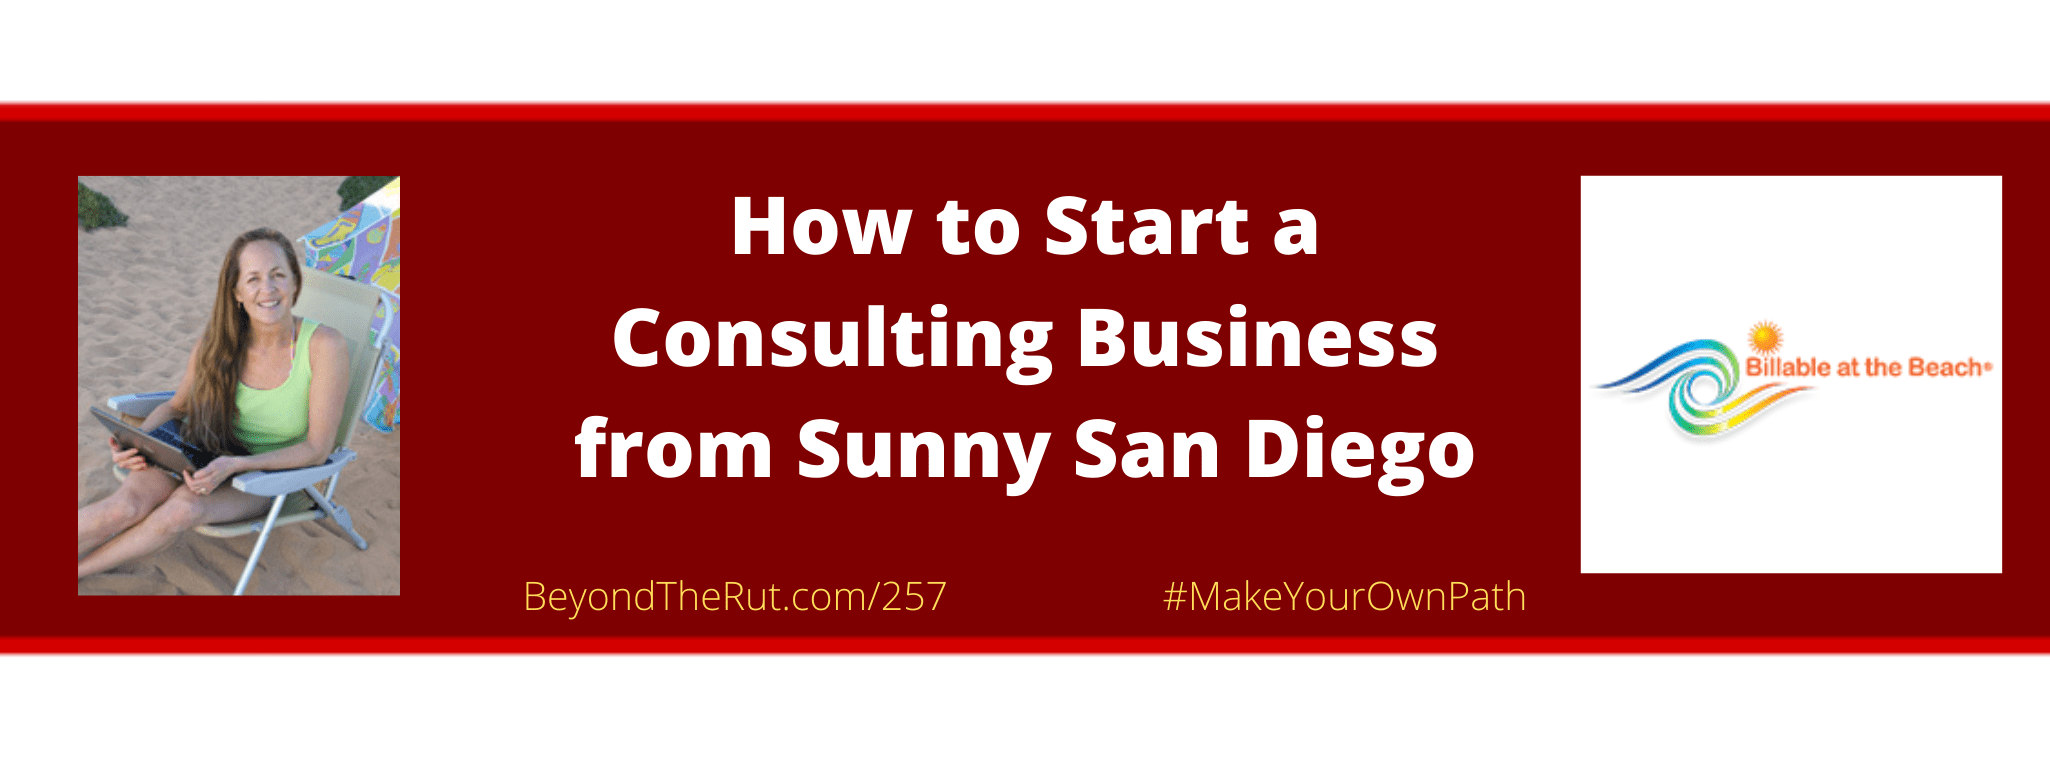 How to Start a Consulting Business from Sunny San Diego – BtR 257